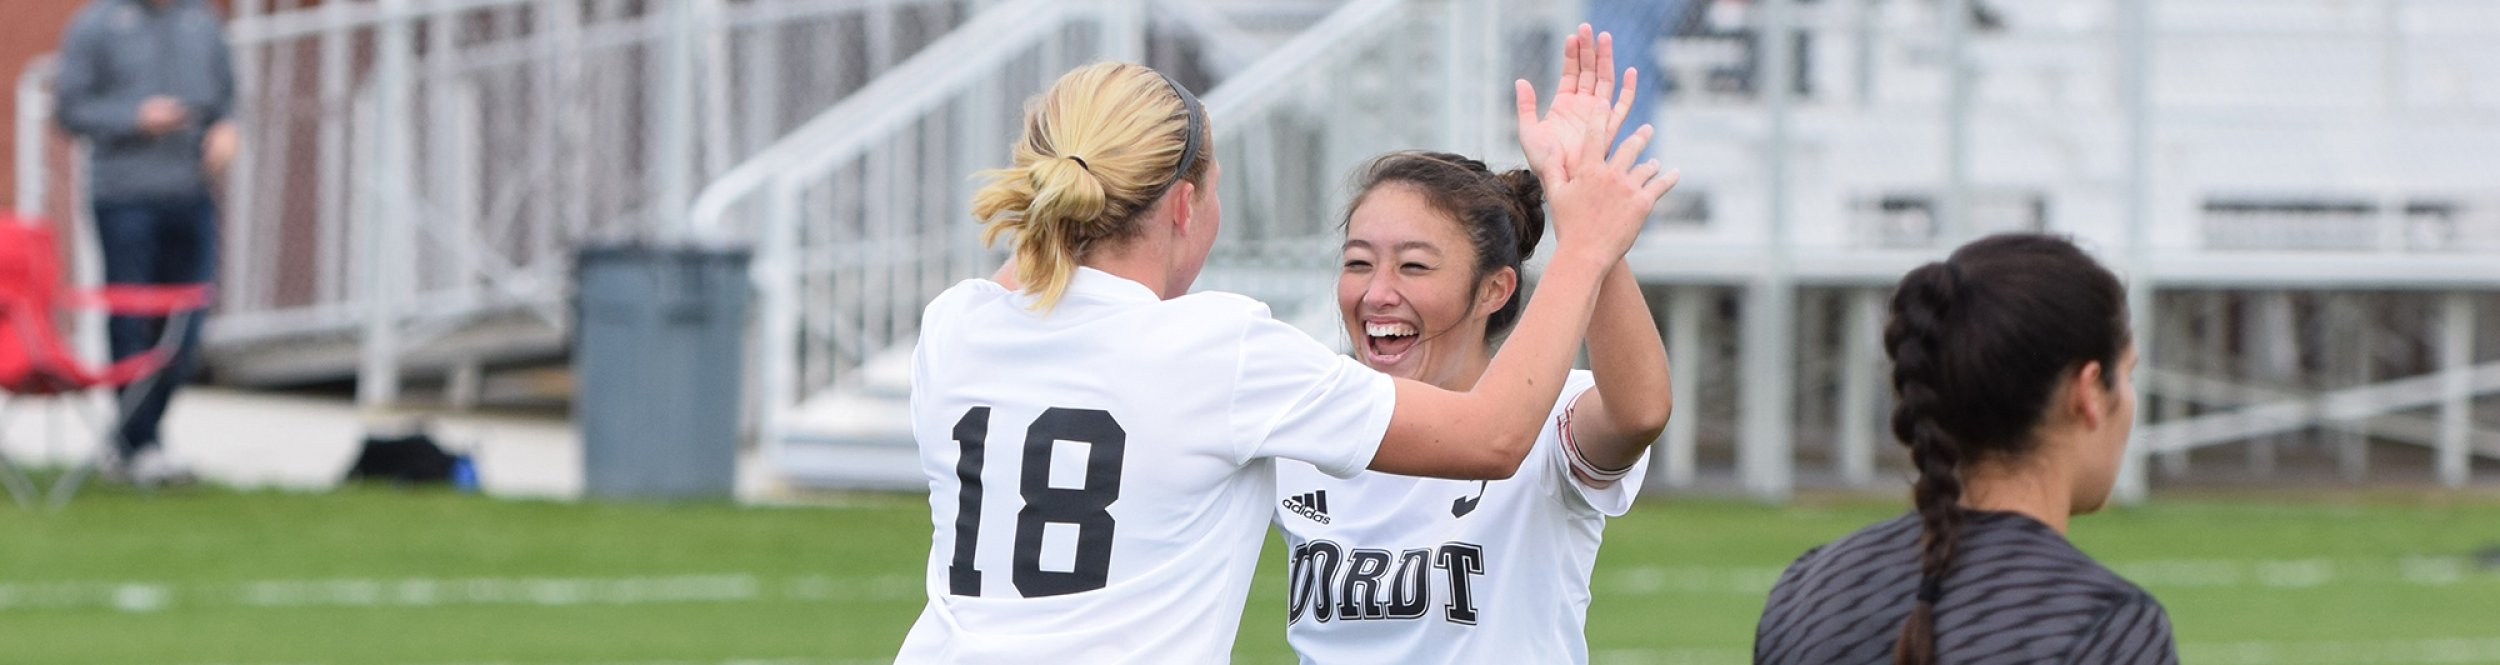 Female soccer players high five each other.